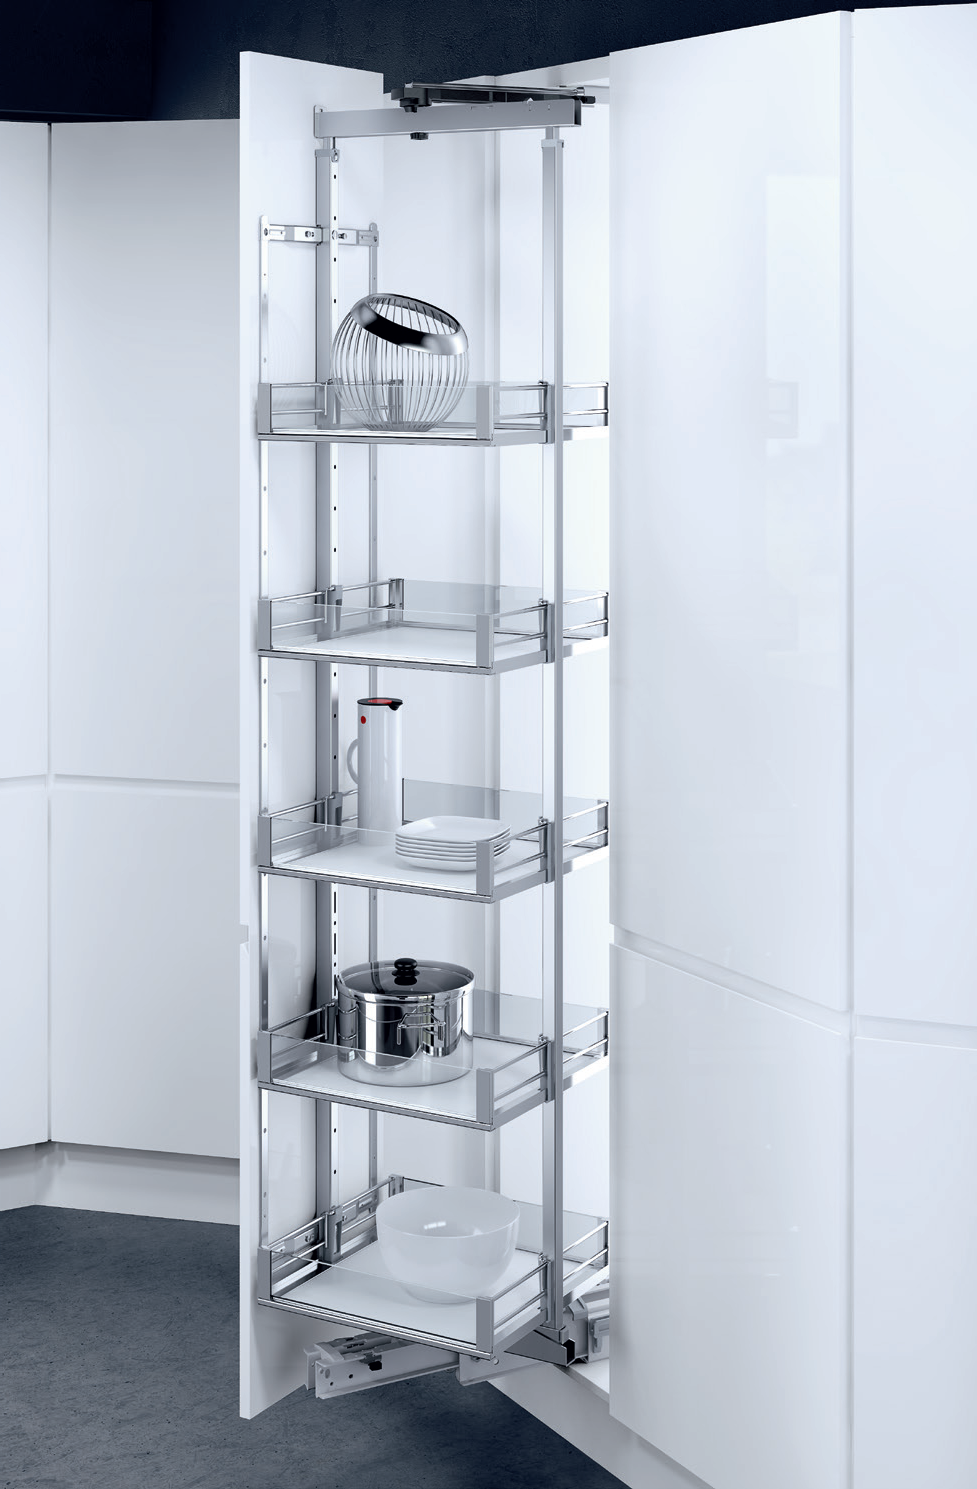 Pantry pull-out HSA Rotary, Available basket variants: Premea and ...